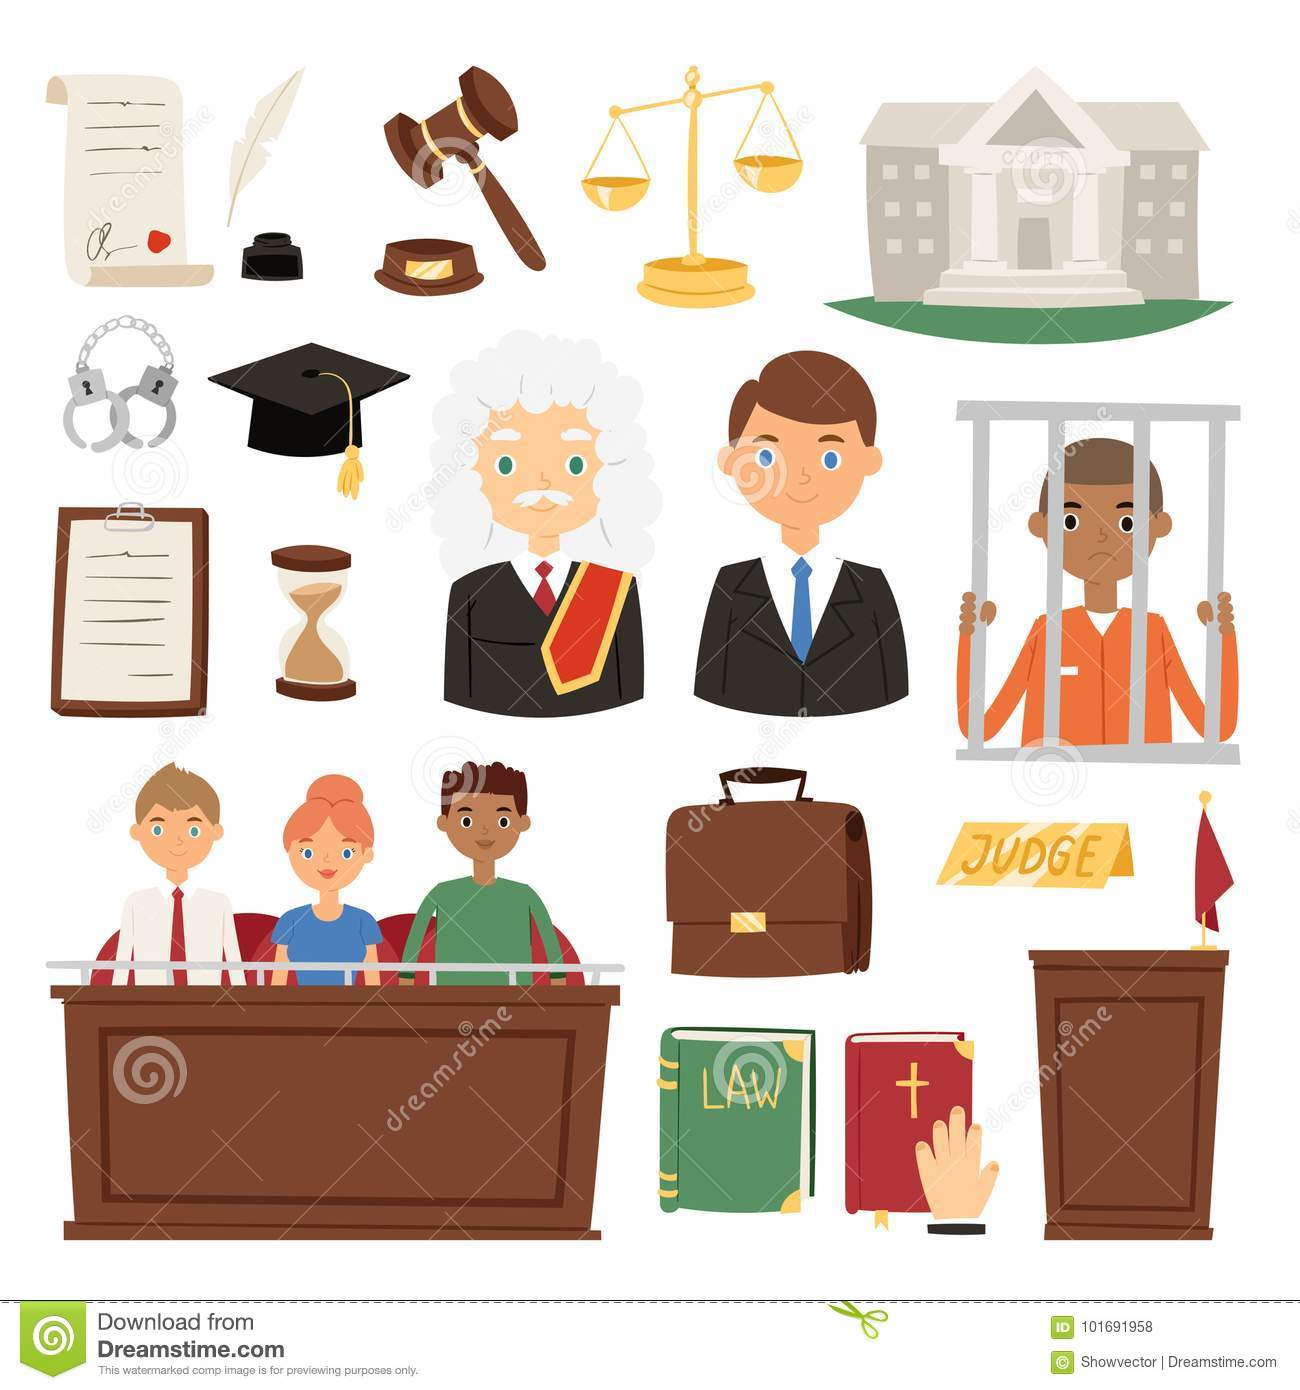 Law Judge Process Legal Court Icon Set Judgement Justice